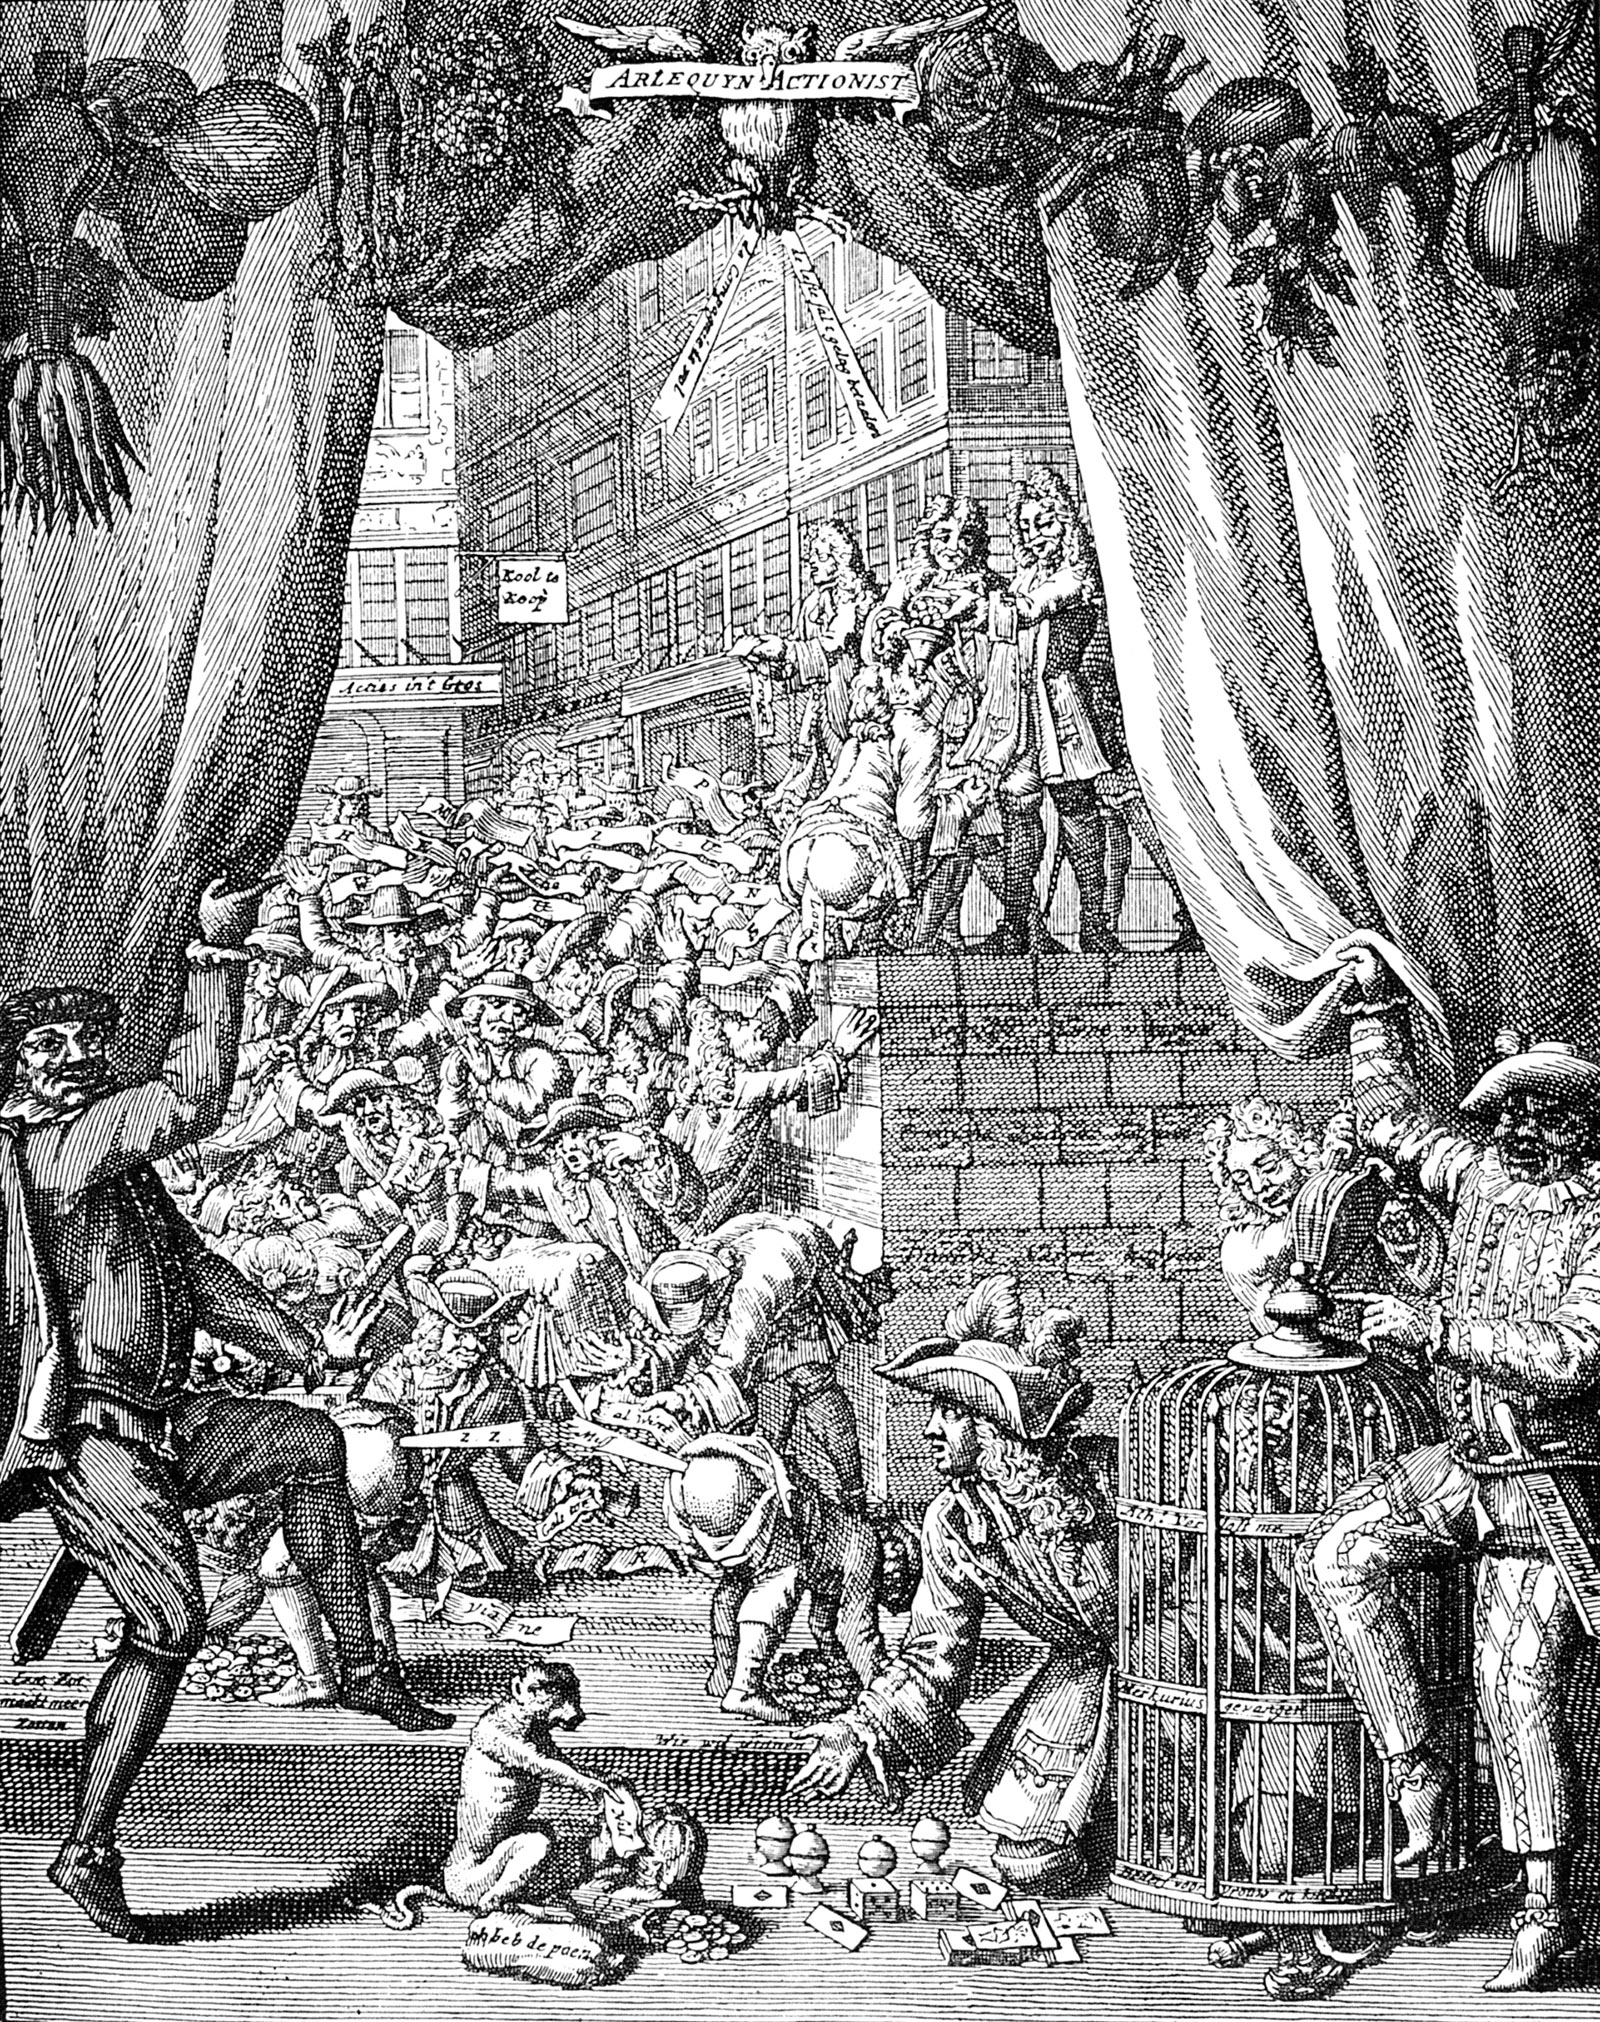 A satirical engraving showing panic in Paris following the failure of John Law's financial scheme, 1720